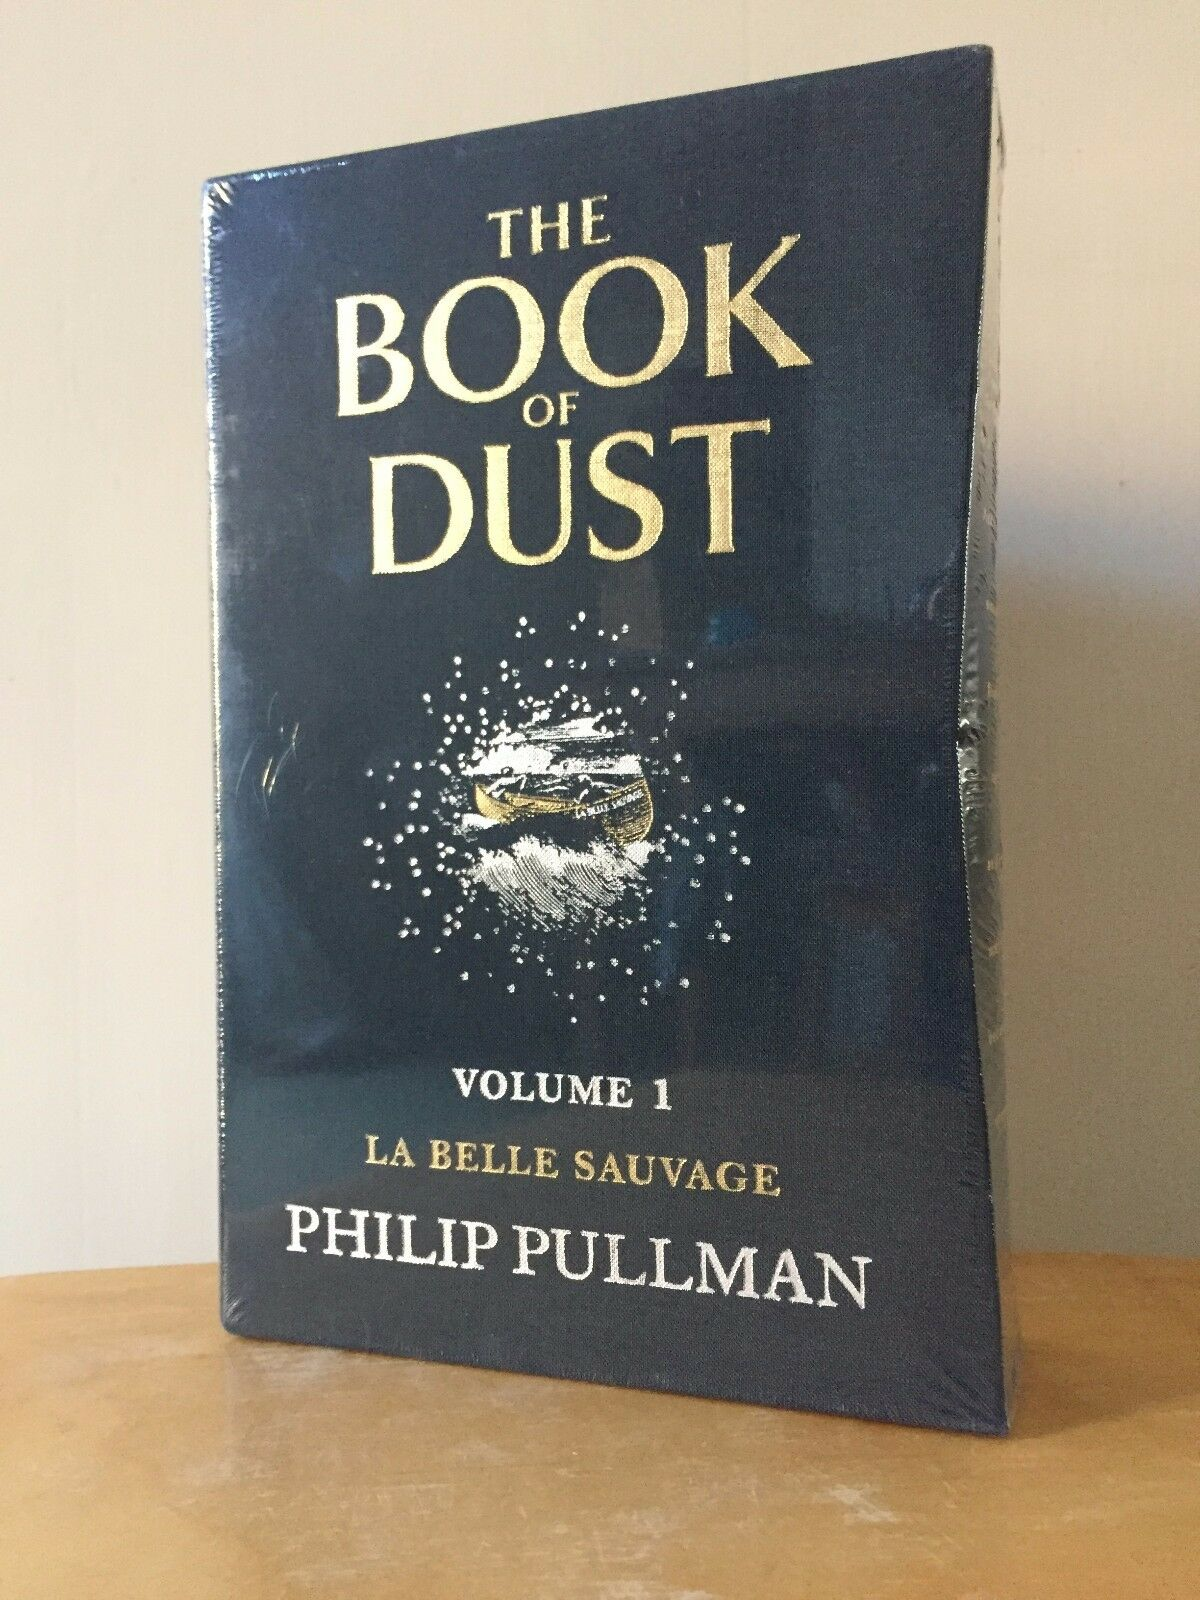 Signed Philip Pullman Daemon Voices Limited Ed in Slipcase UK 1st/1st preorder